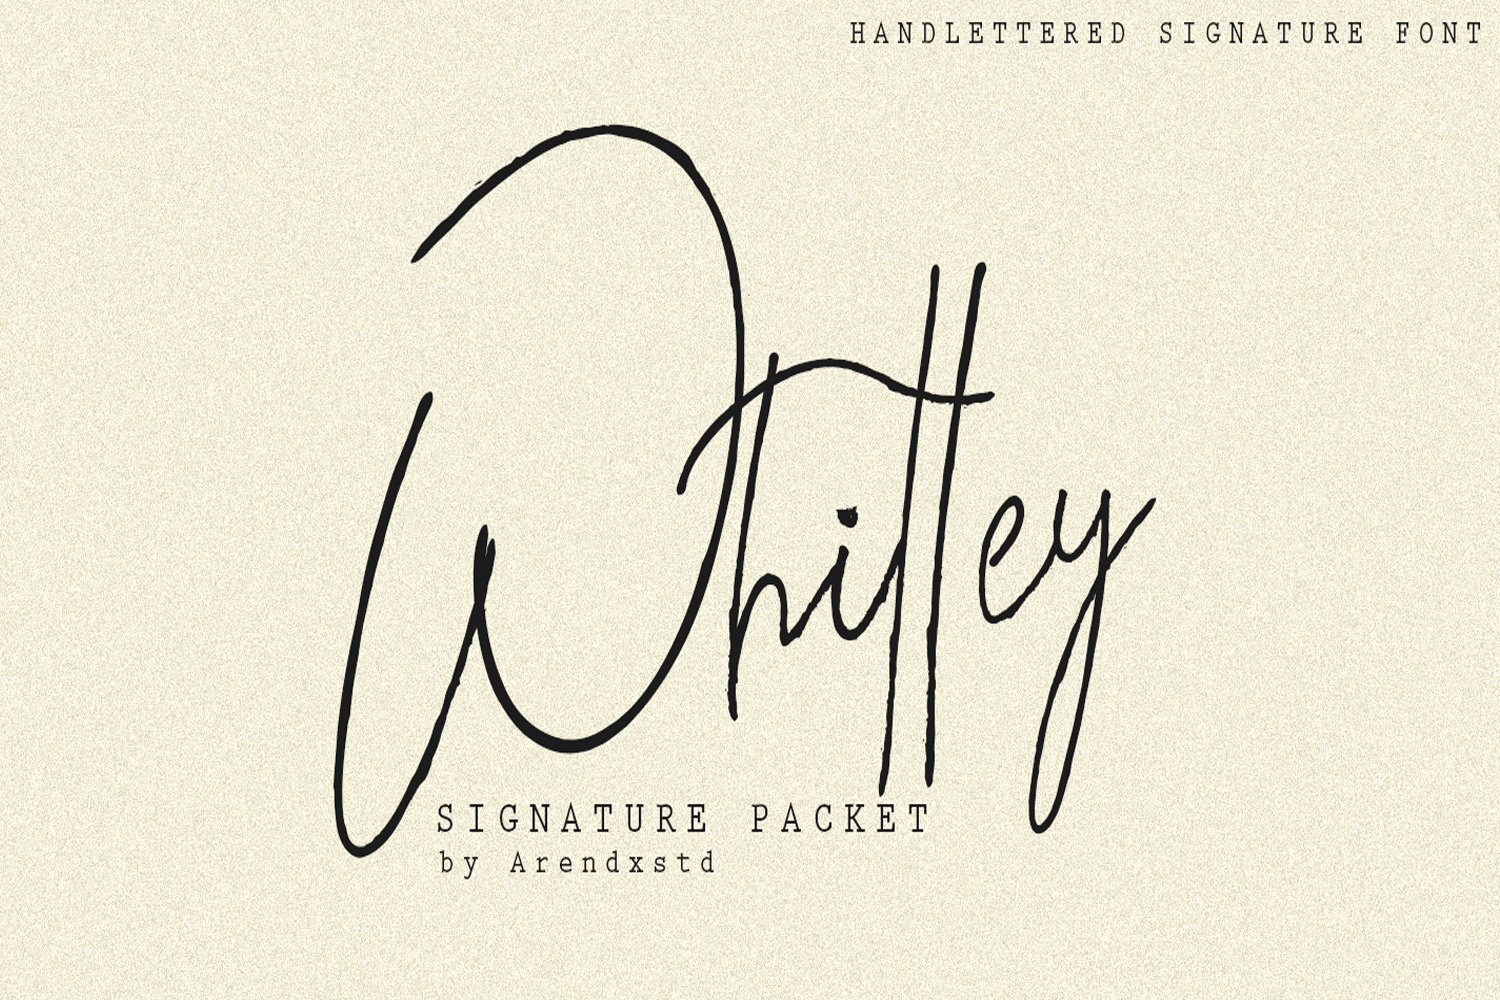 Whitley Signature Packet example image 1